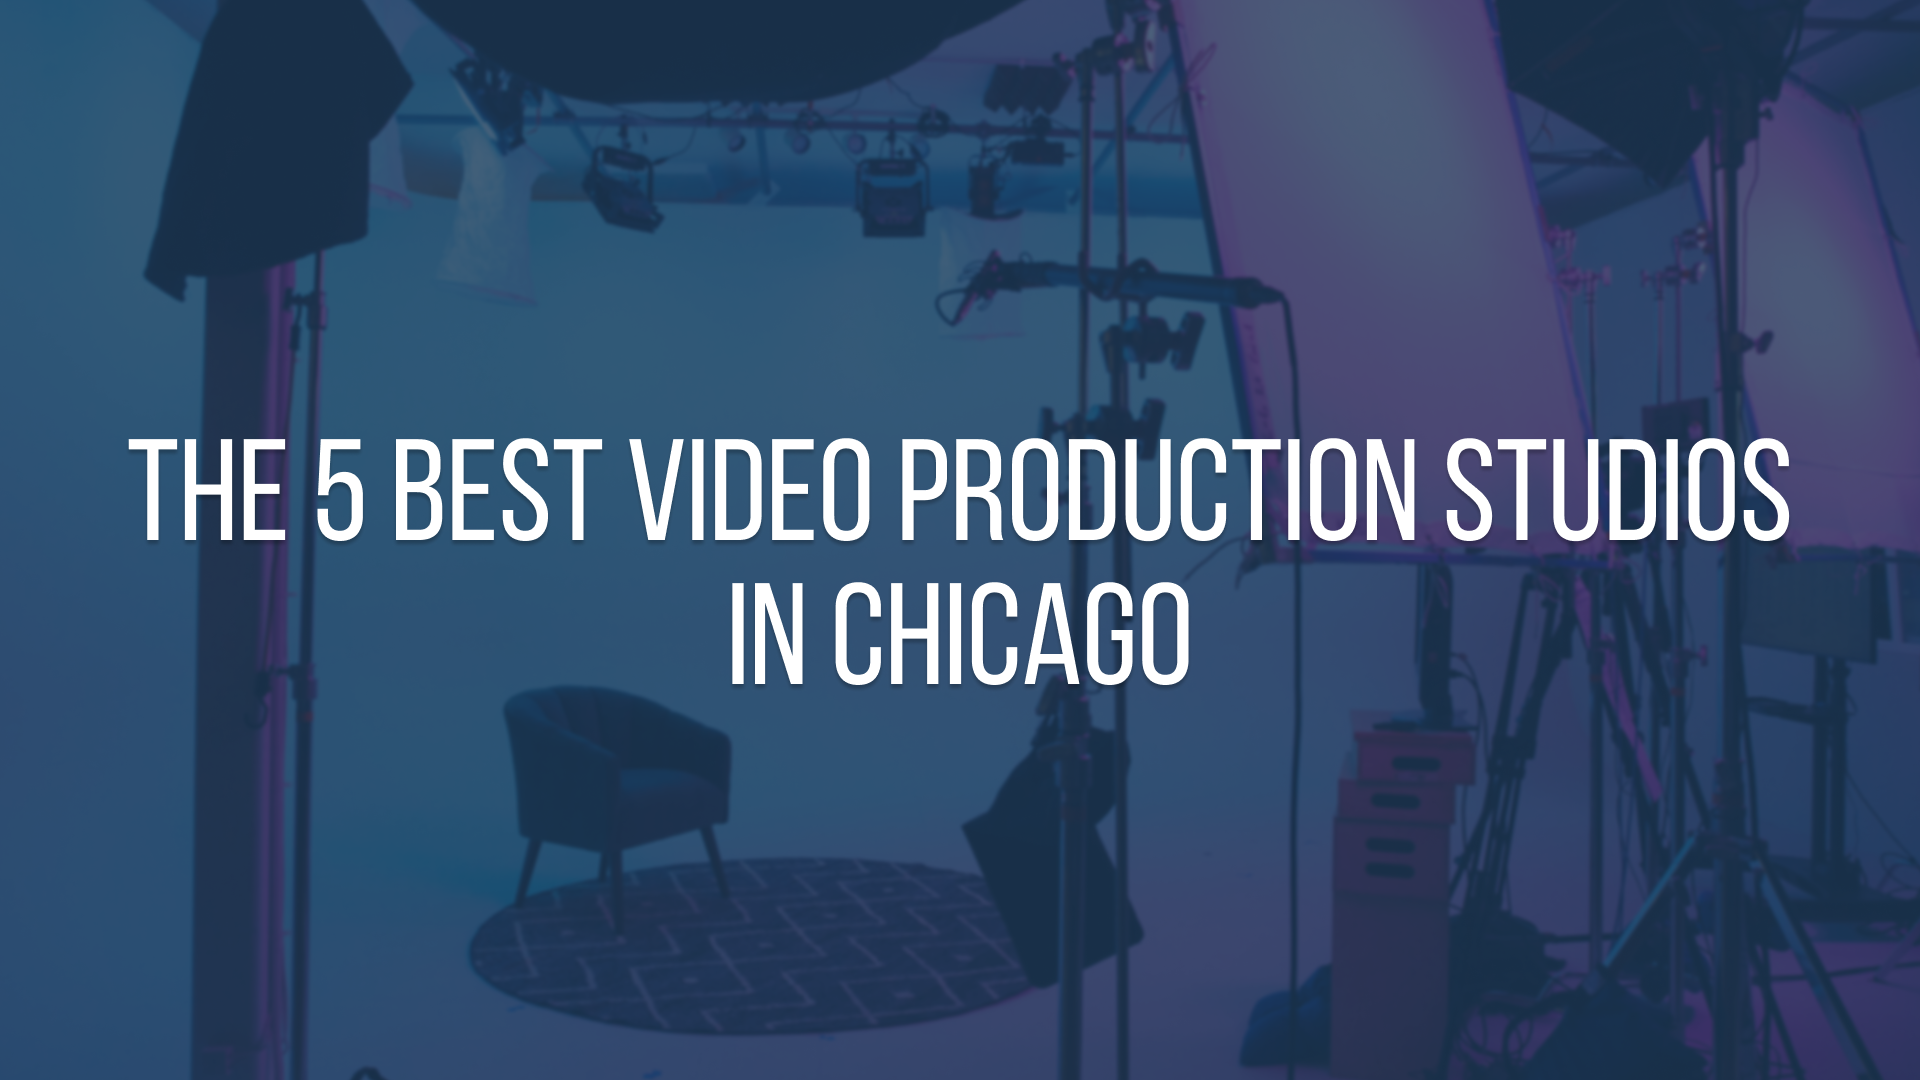 The 5 Best Video Production Studios in Chicago